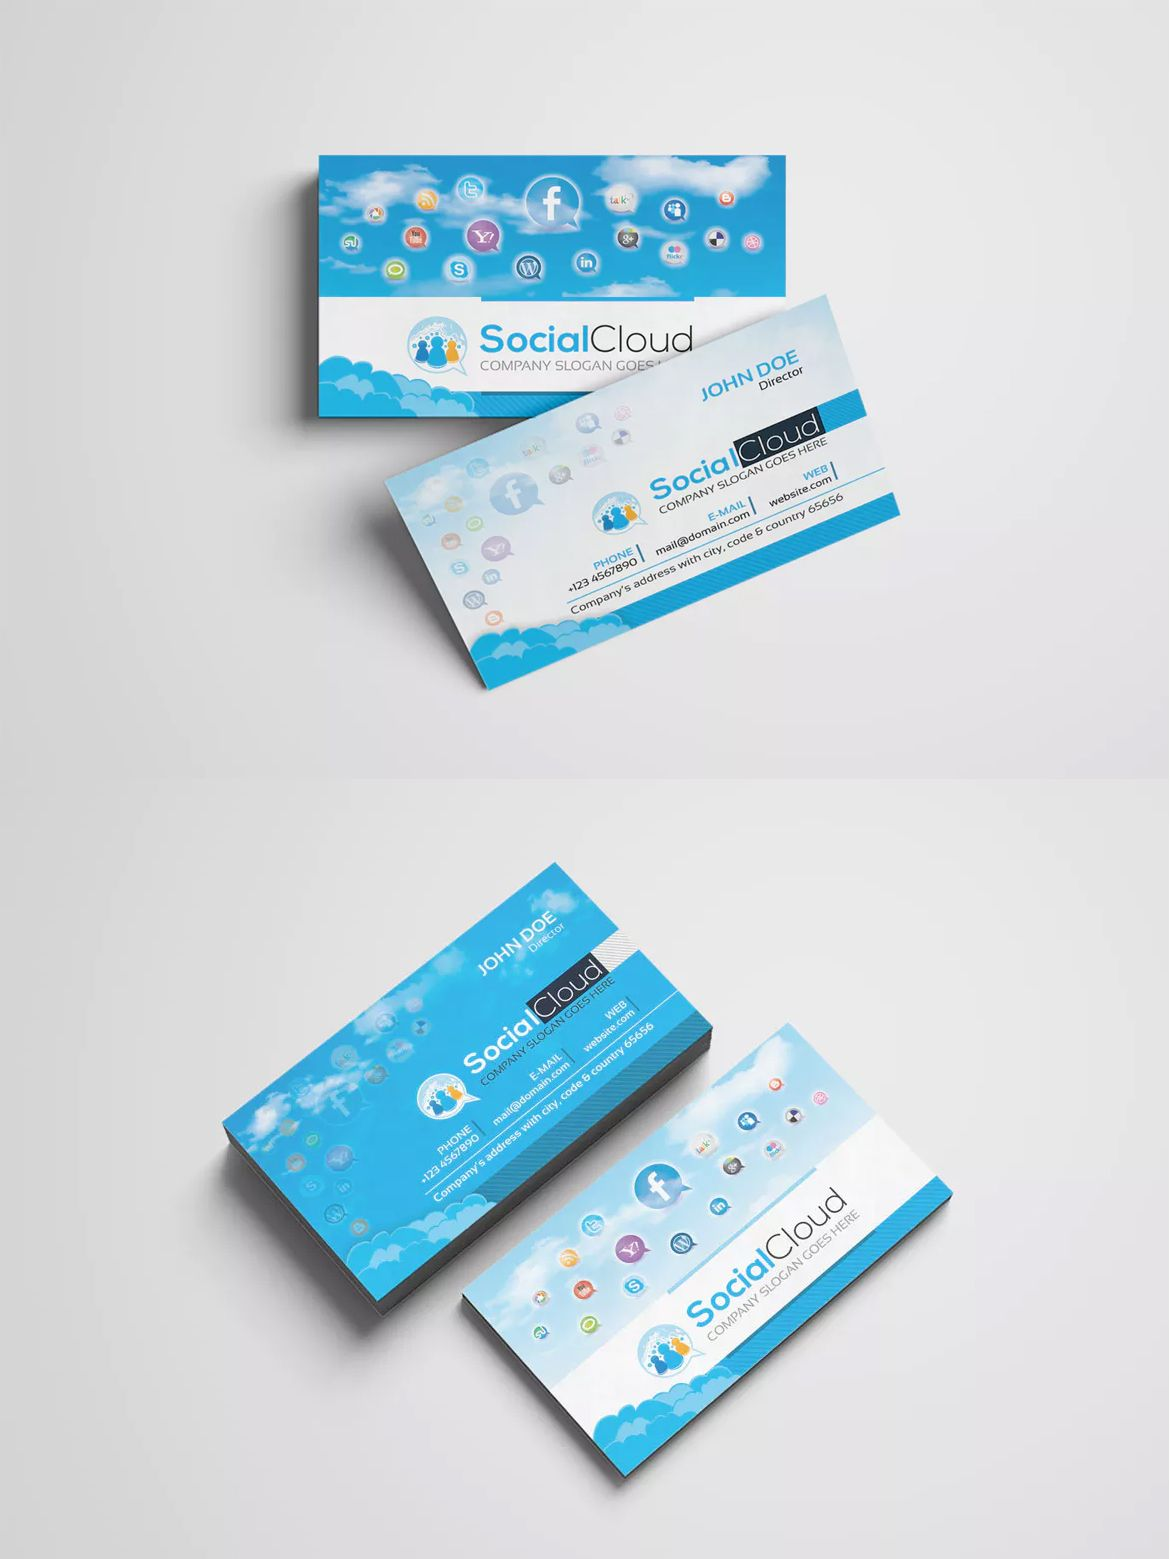 Social media business card design template ai eps psd business social media business card design template ai eps psd cheaphphosting Image collections